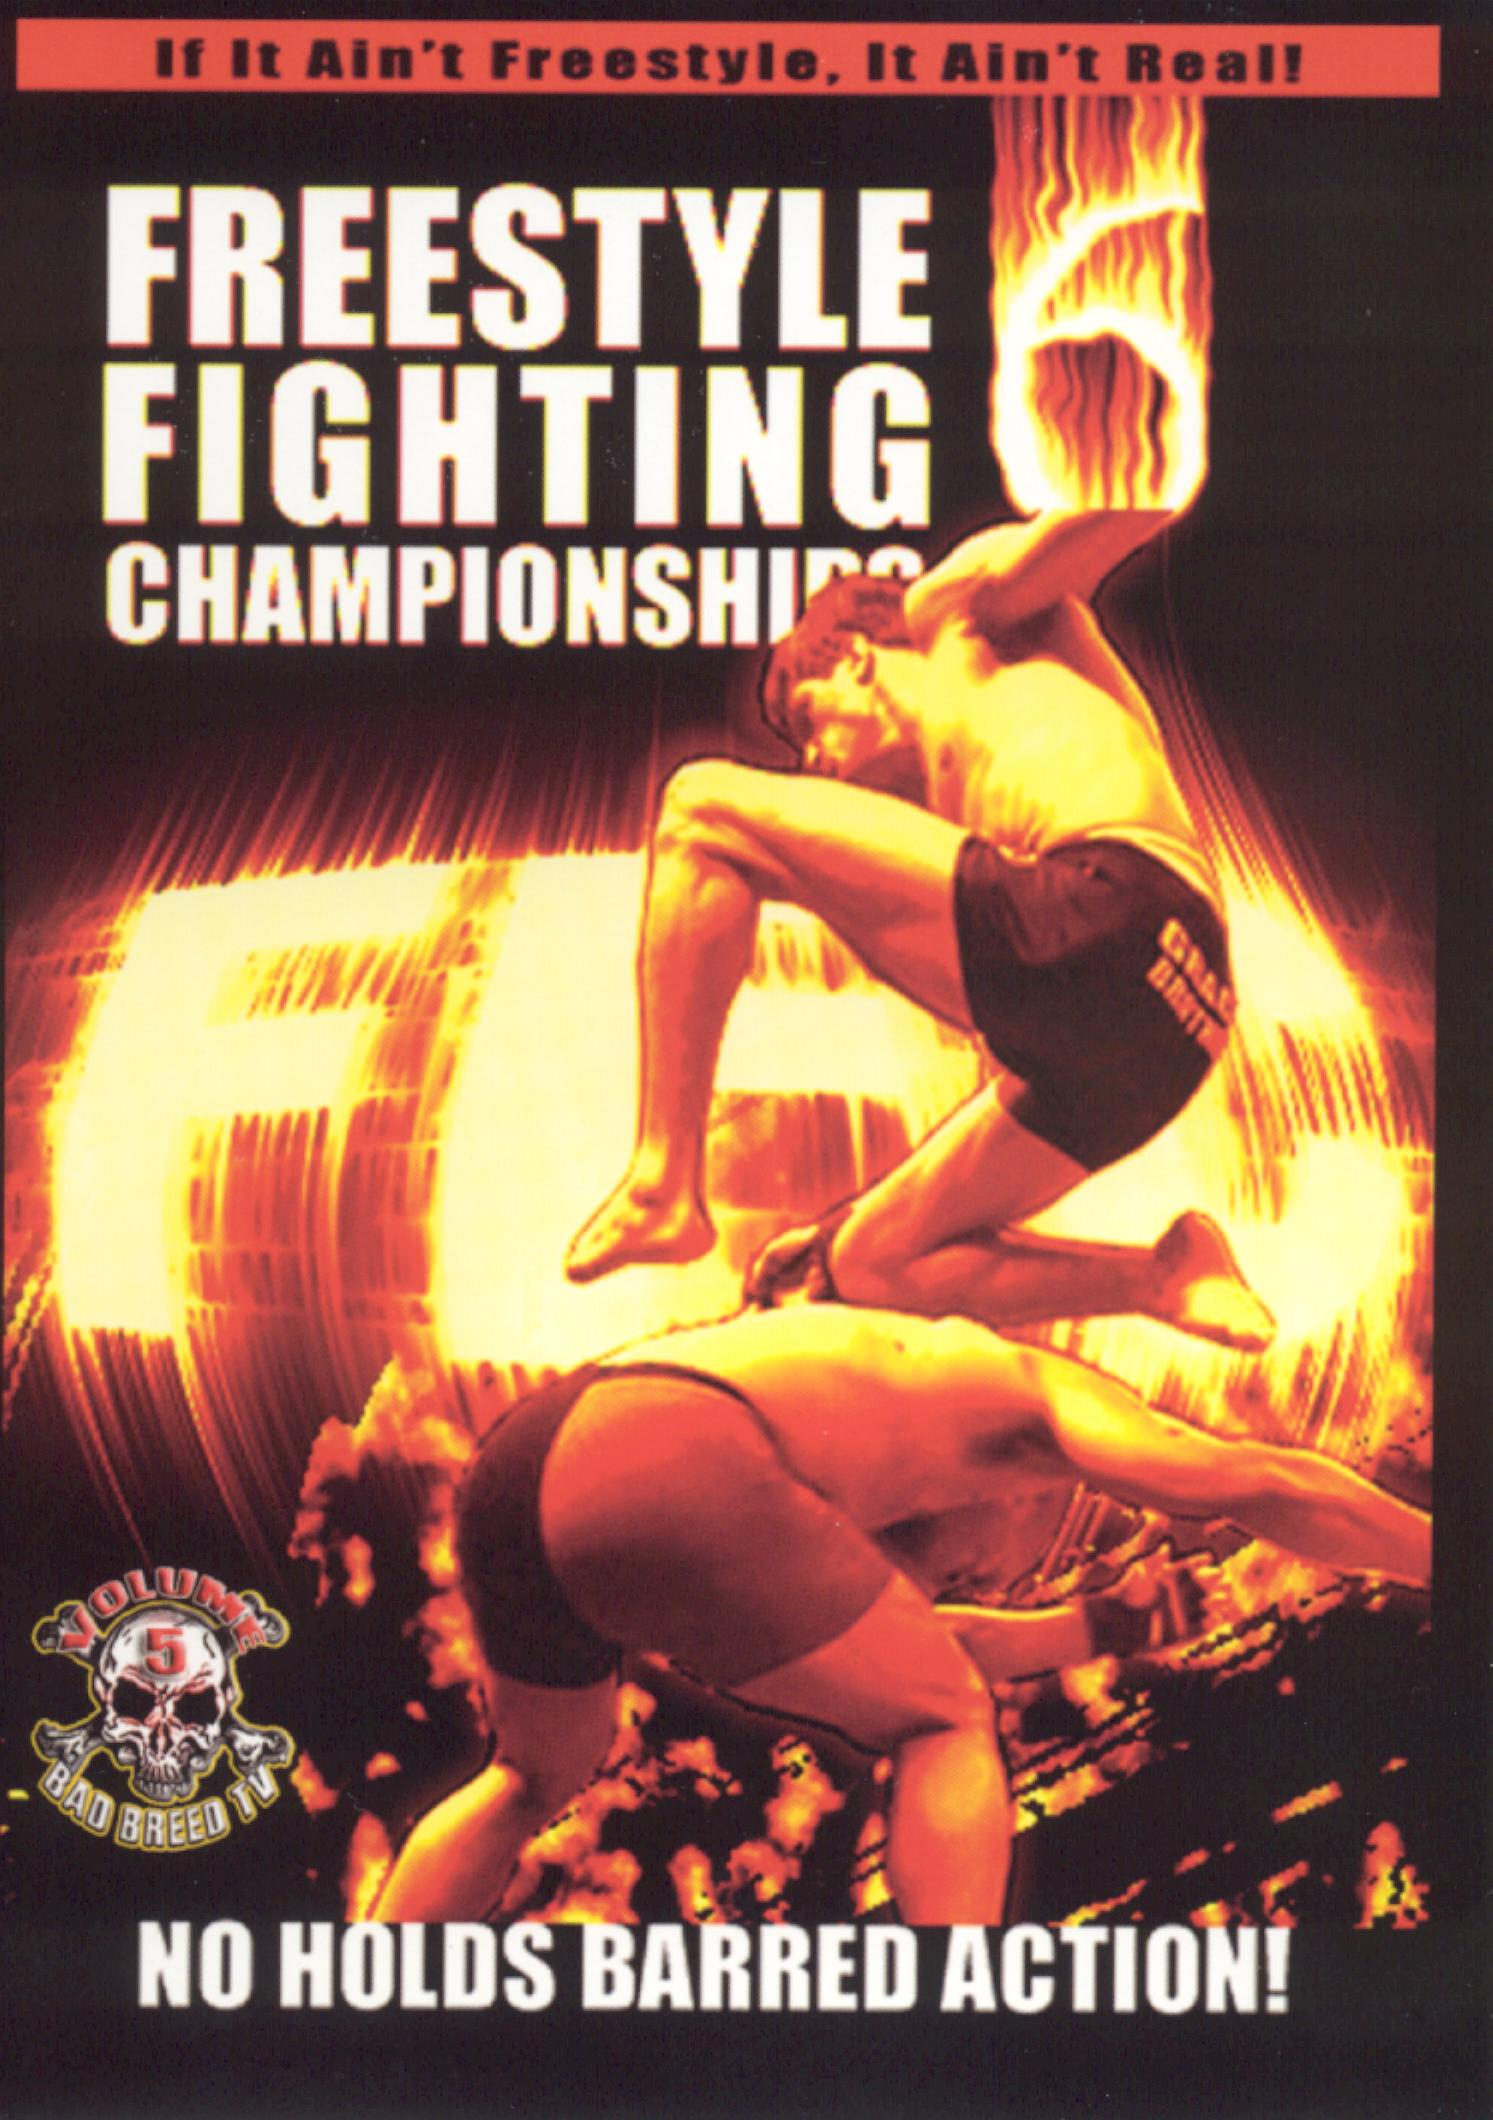 Bad Breed TV, Vol. 5: Freestyle Fighting Championships 6